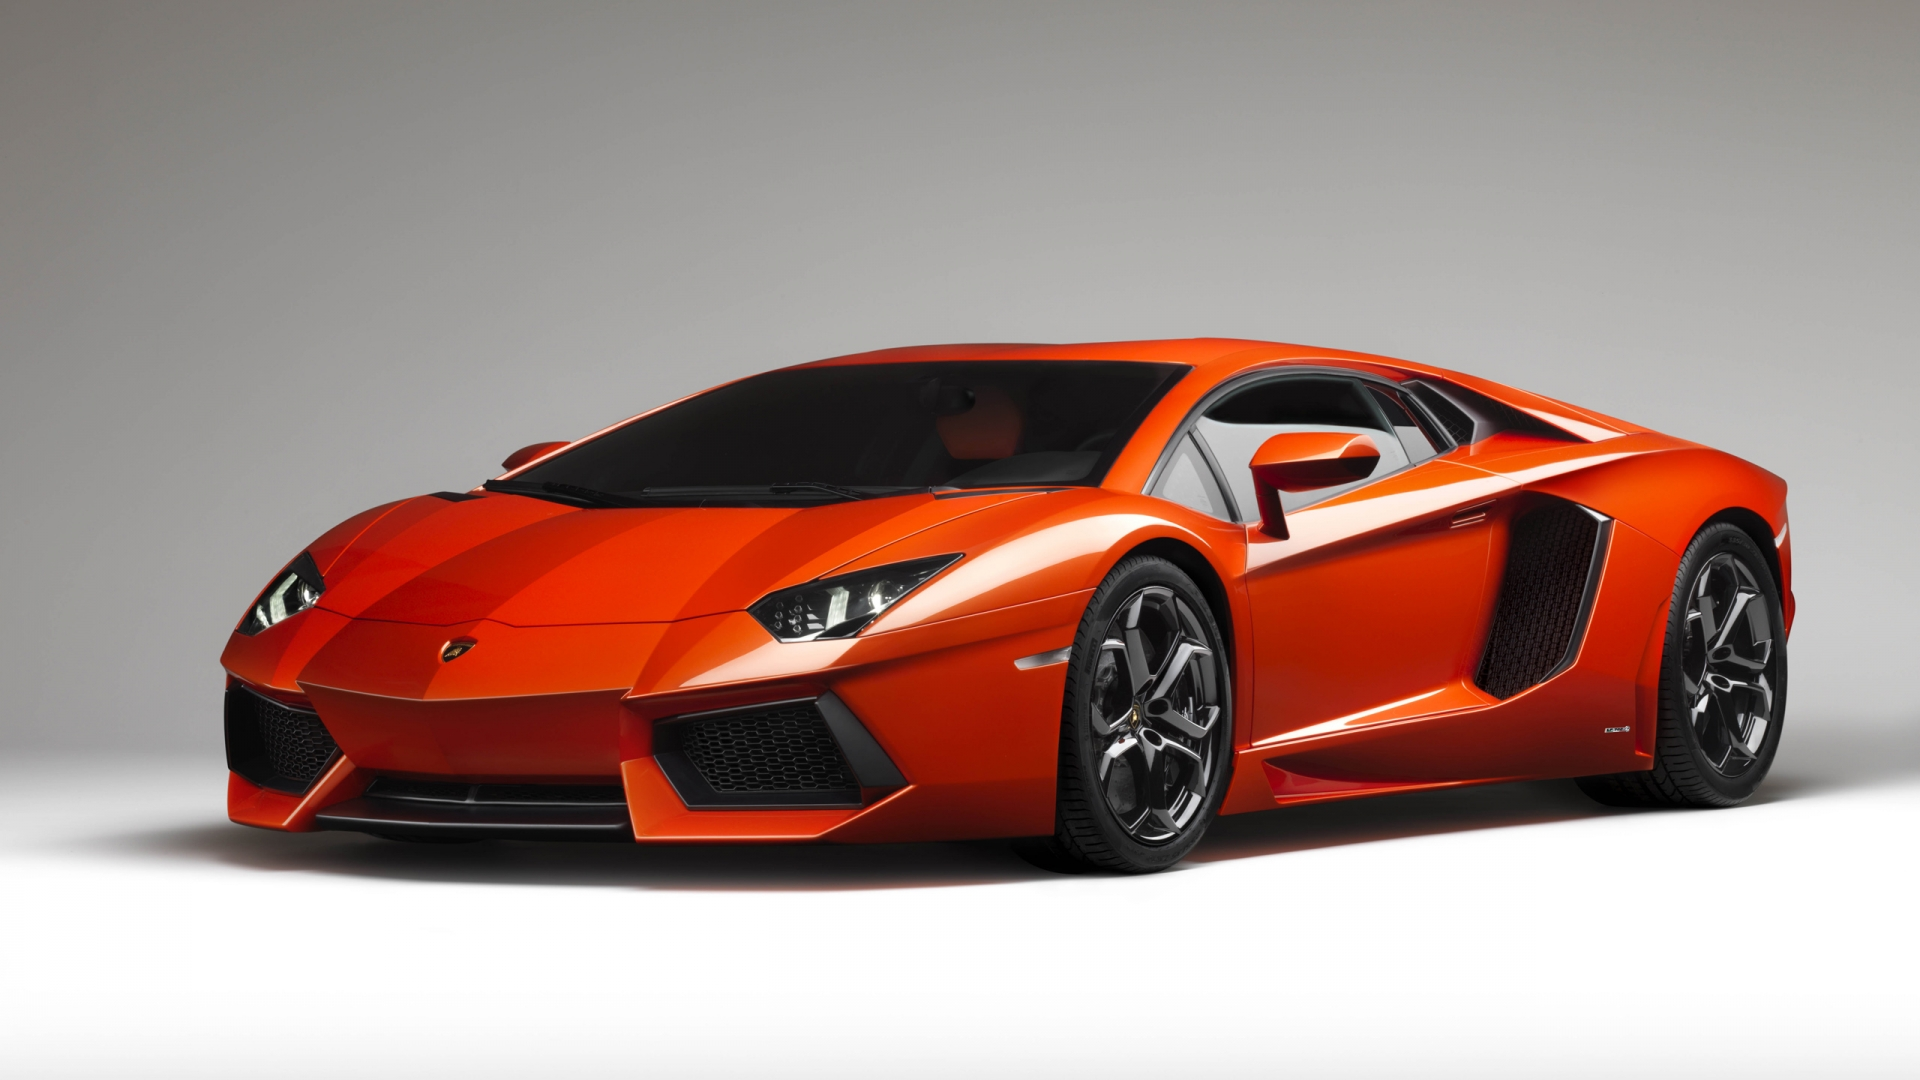 HD Wallpapers HD 1080p Desktop Wallpapers lamborghini aventador 1920x1080